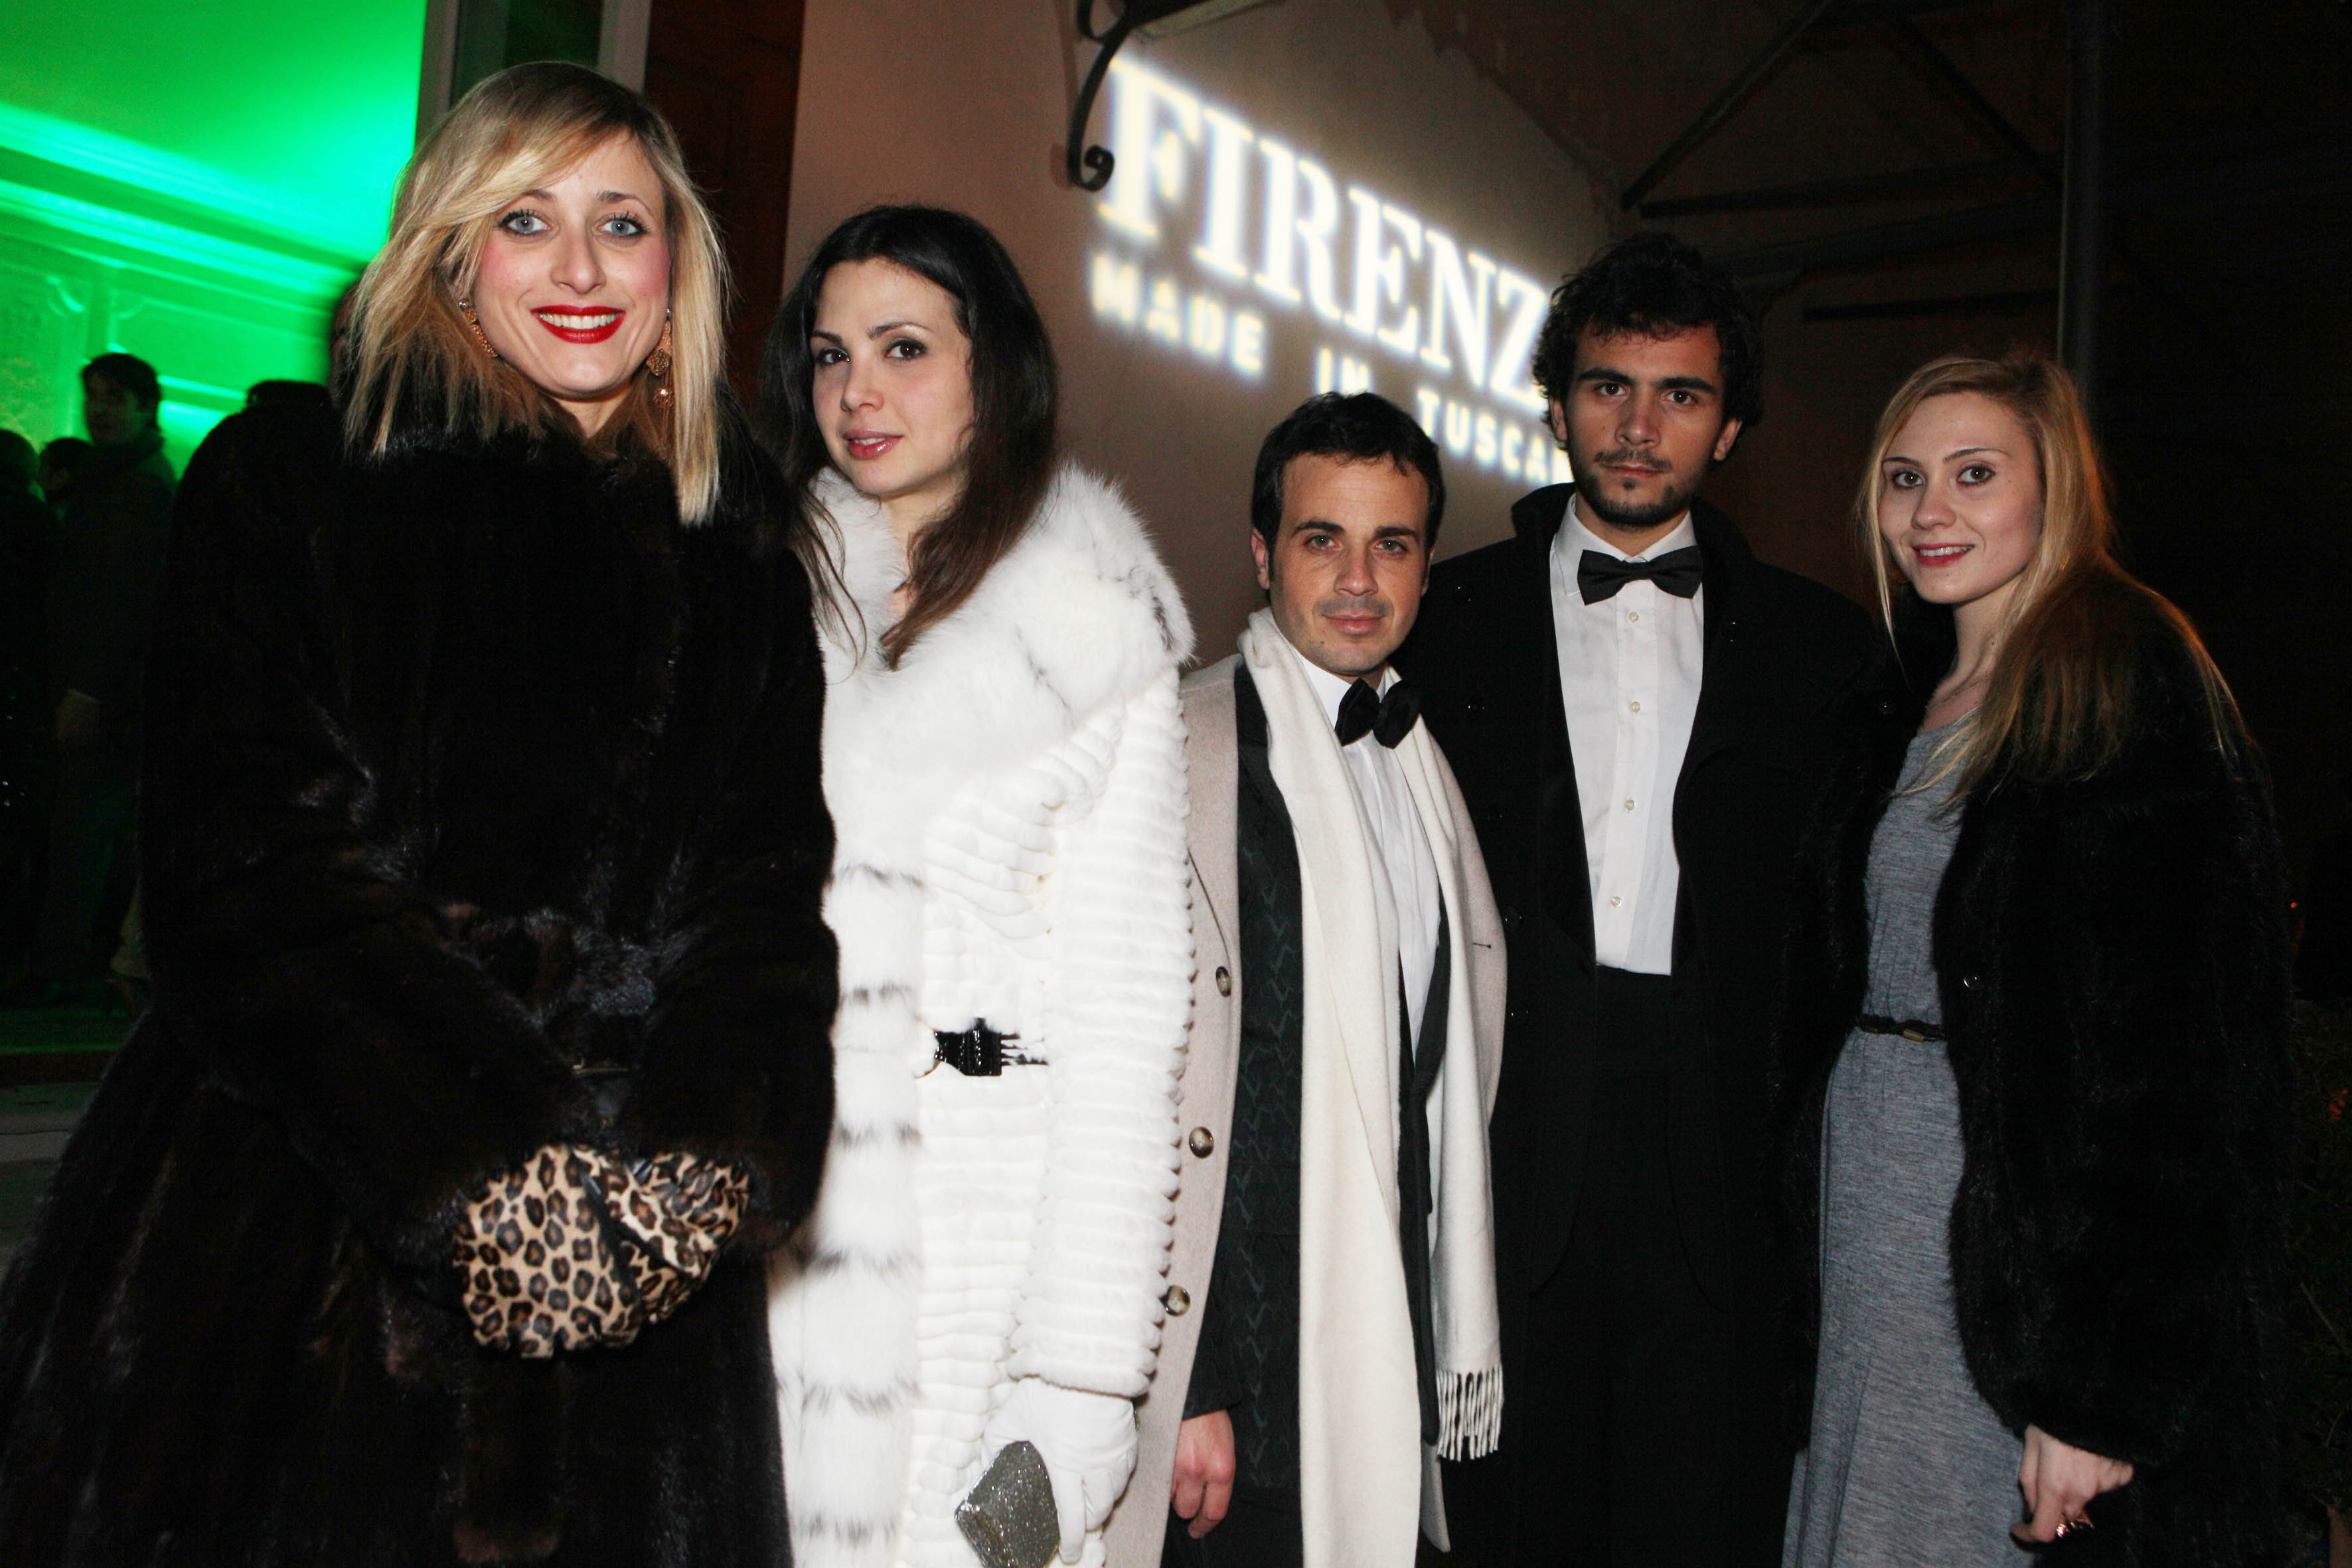 Presentazione Firenze Made in Tuscany n.17